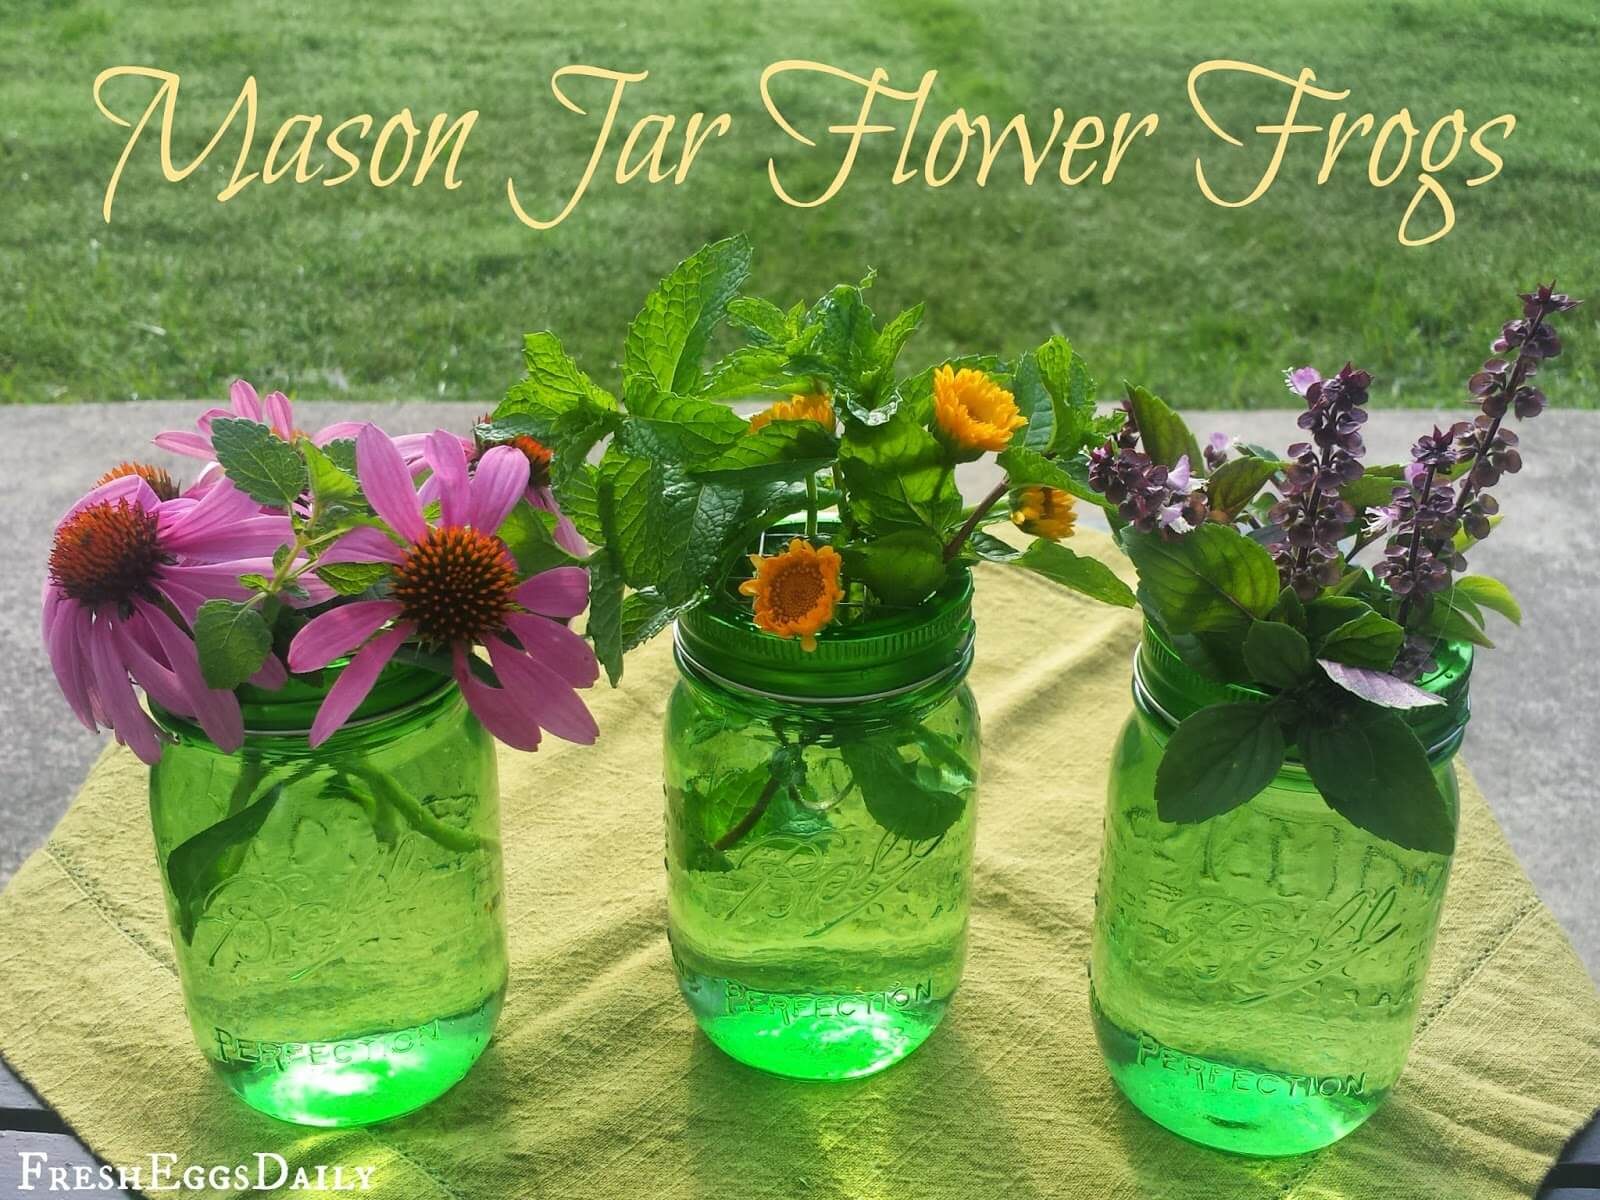 Green Mason Jars with Flower Frogs